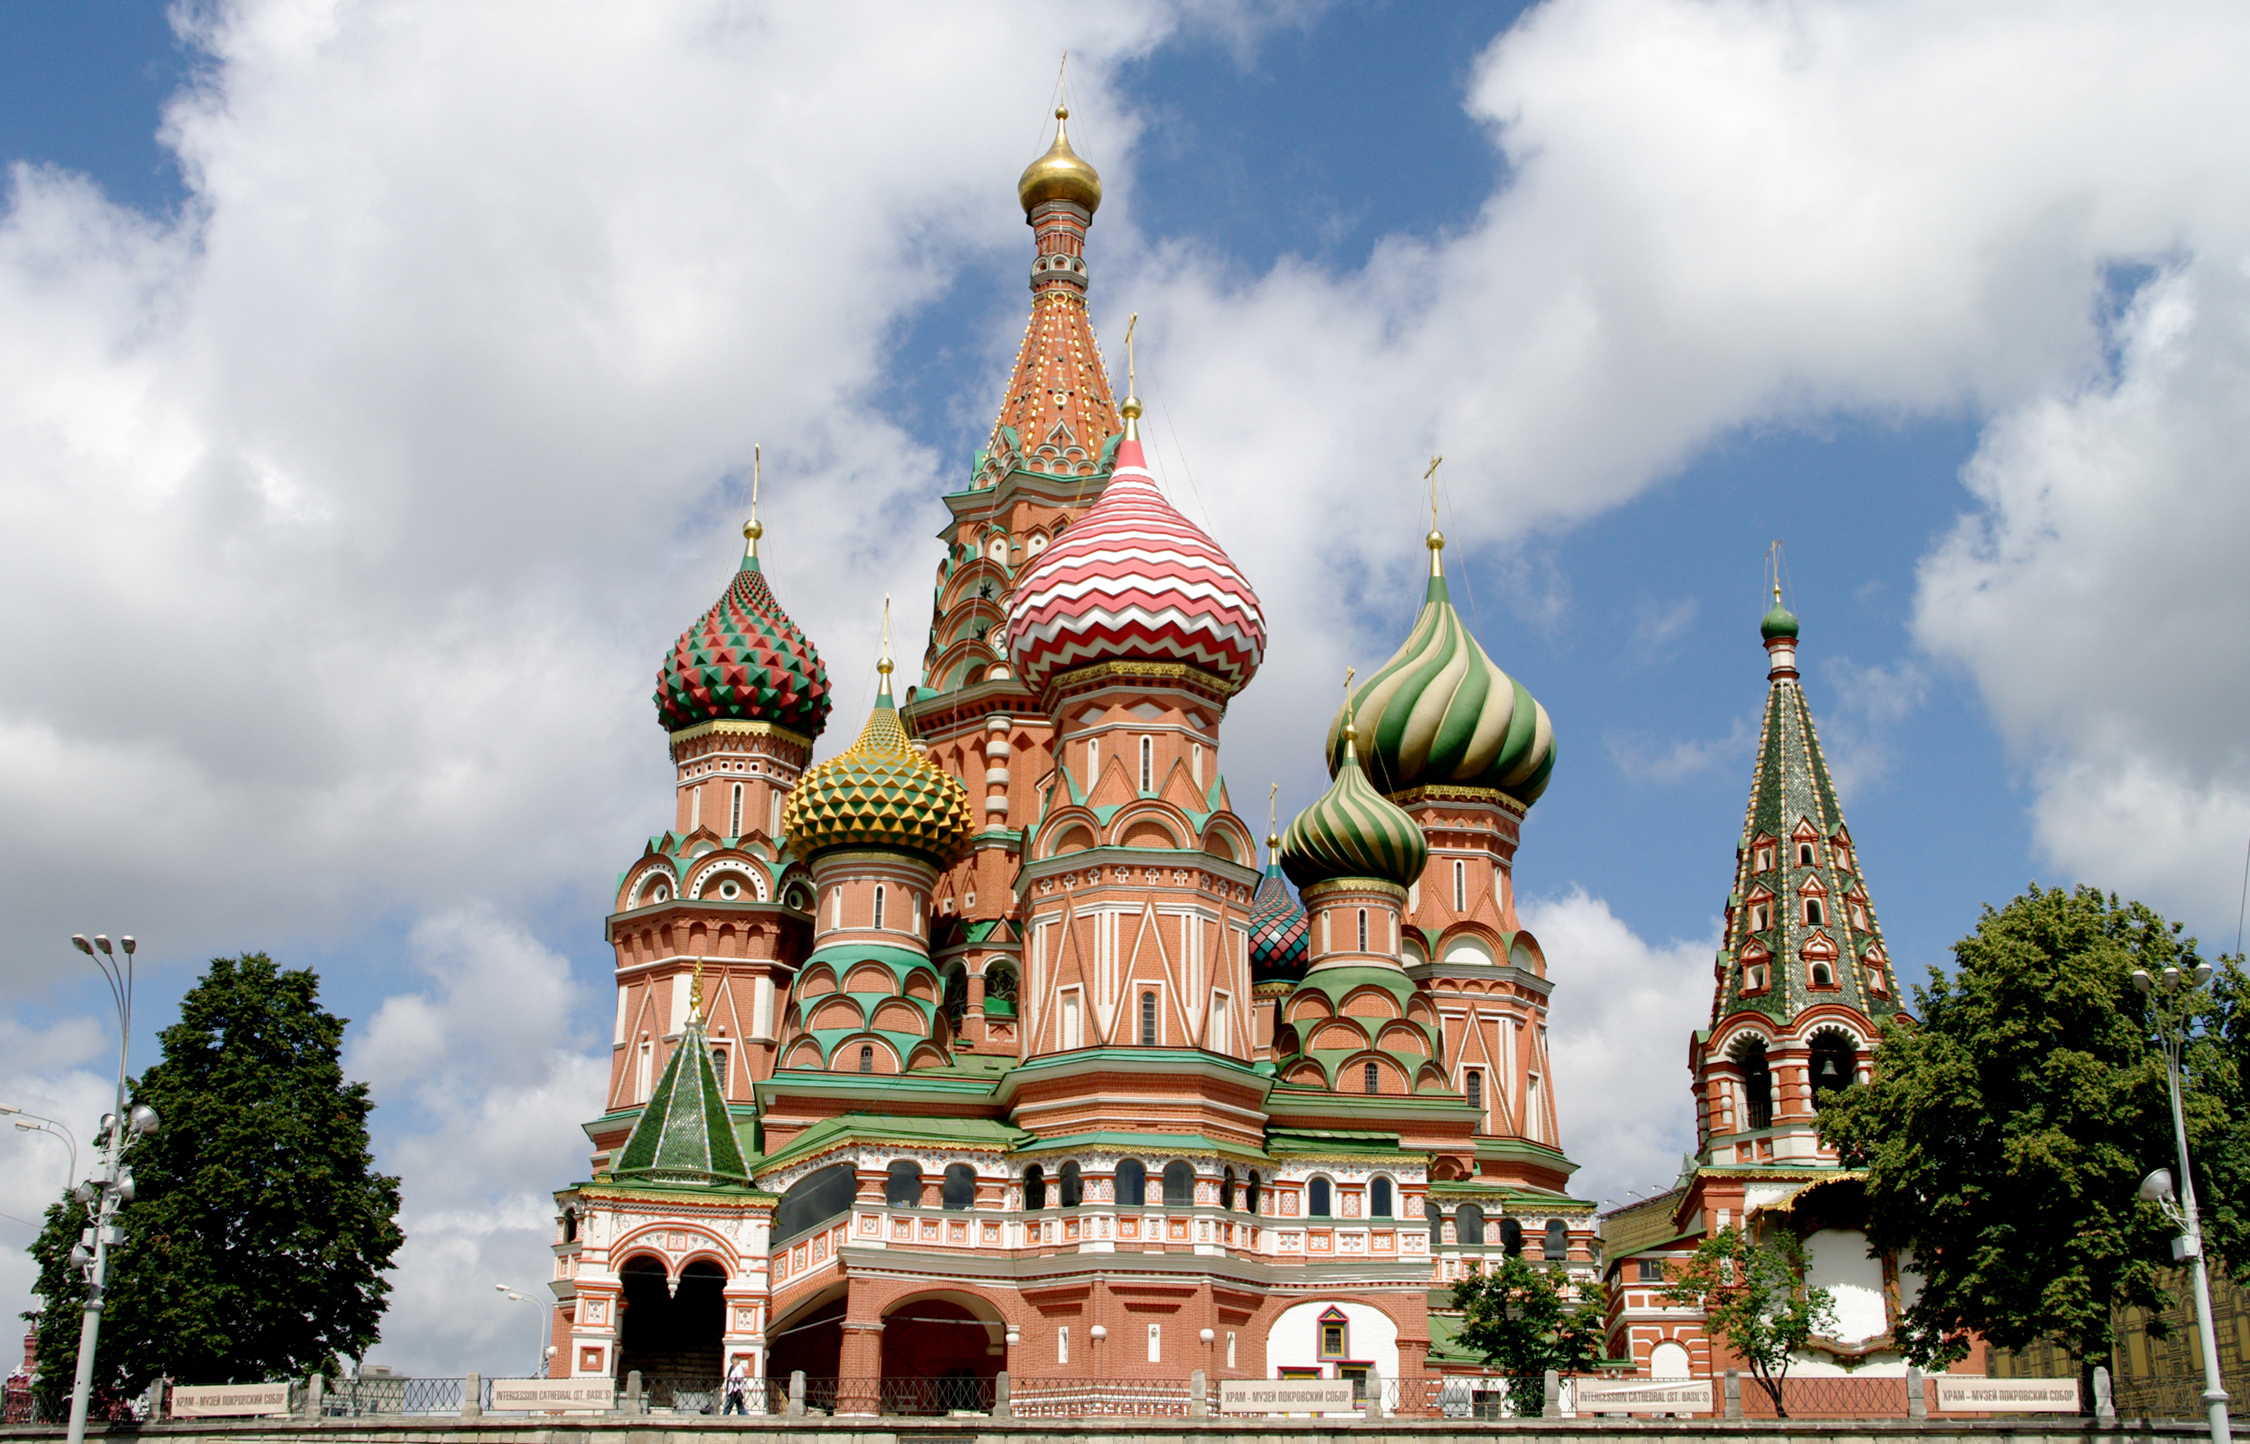 File:St. Basilu0027s Cathedral, Moscow